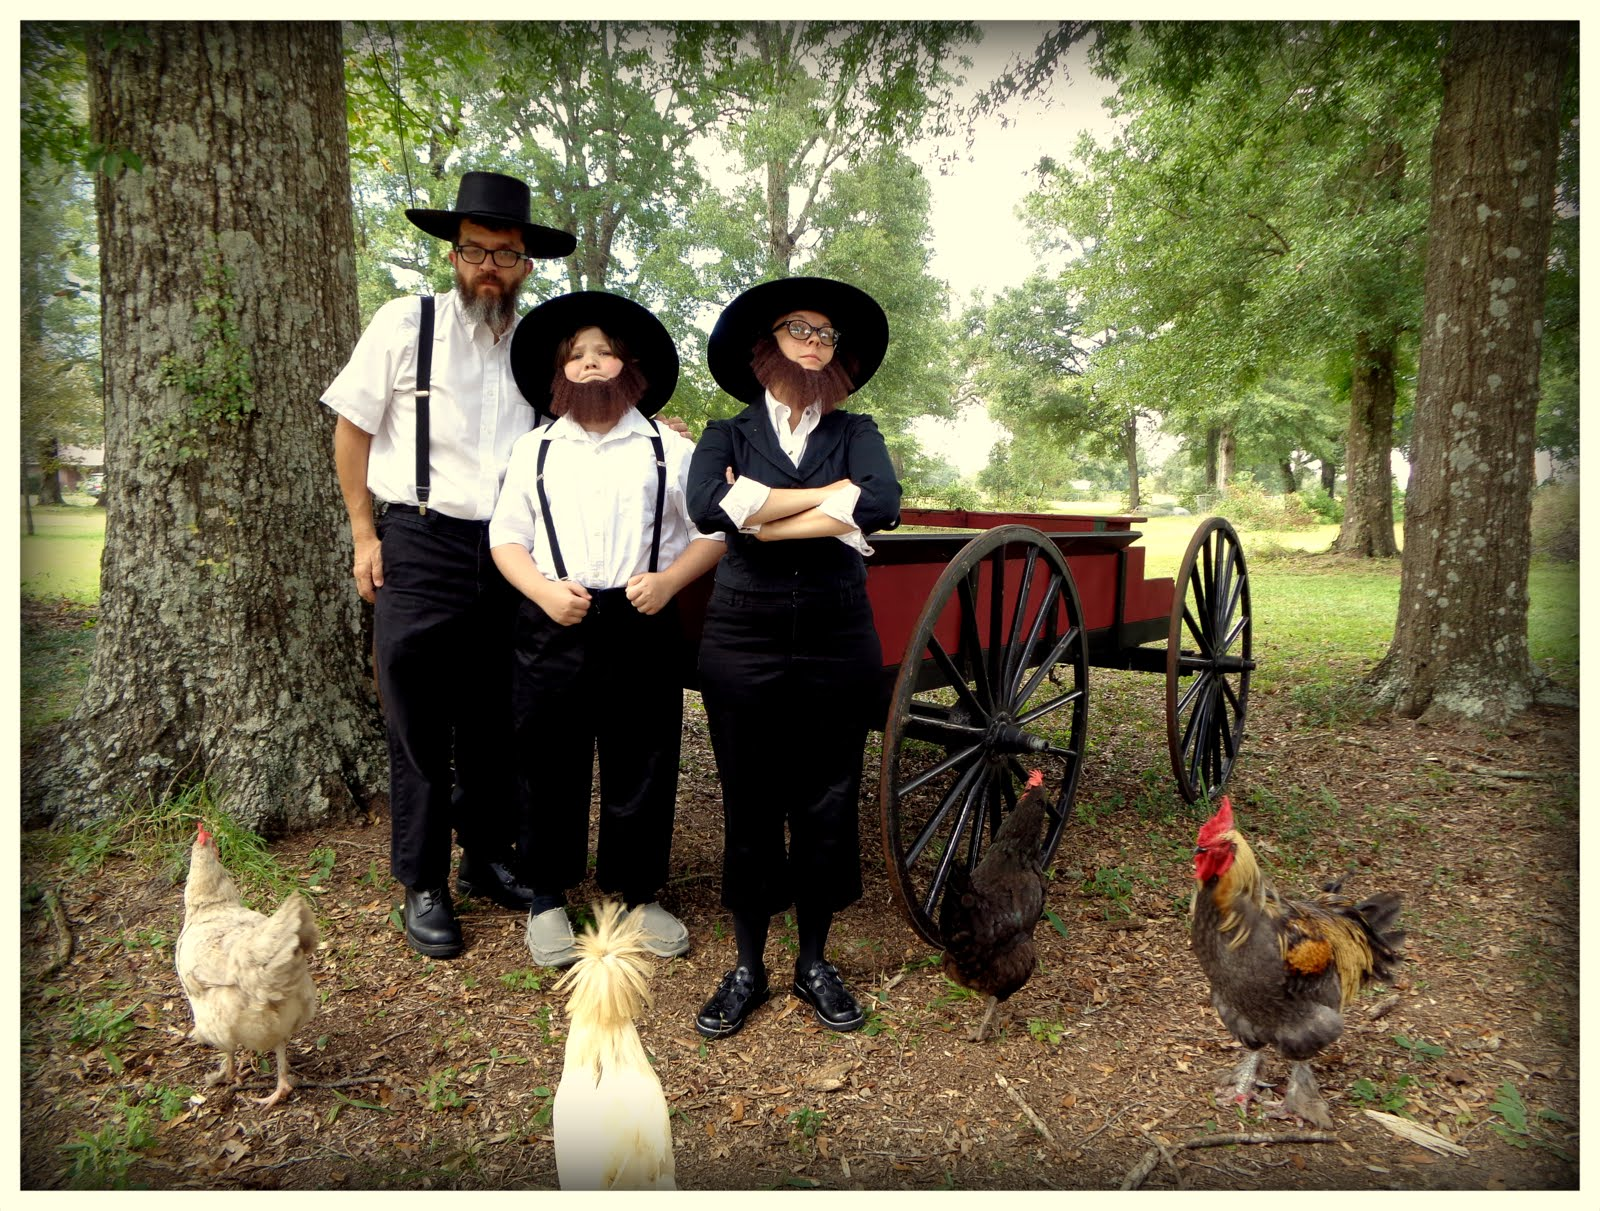 the amish life The amish cook: 5 things gloria enjoys about the amish way of life thanks to mrs moore from ohio, who inquired, what five things do you enjoy the most about the amish way of life.